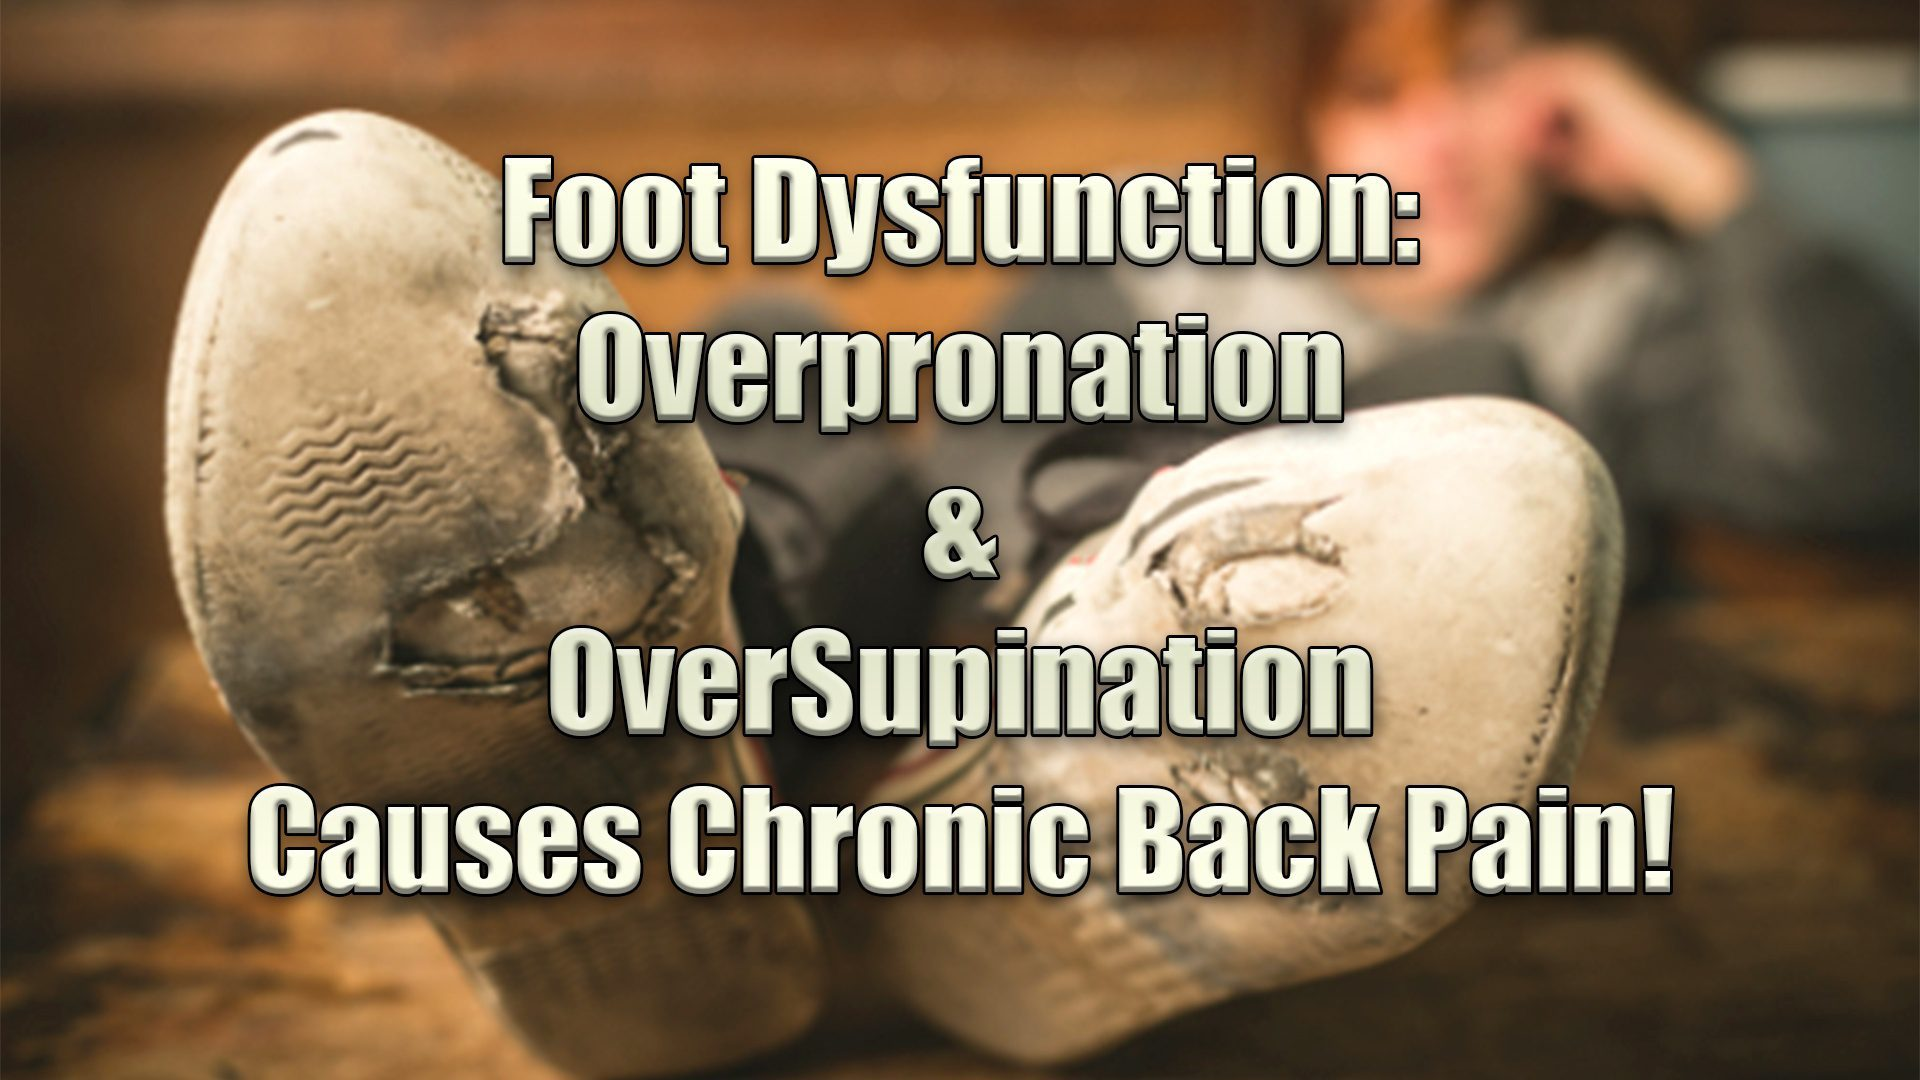 Foot Dysfunction: Over Pronation & Supination Causes Chronic Back Pain